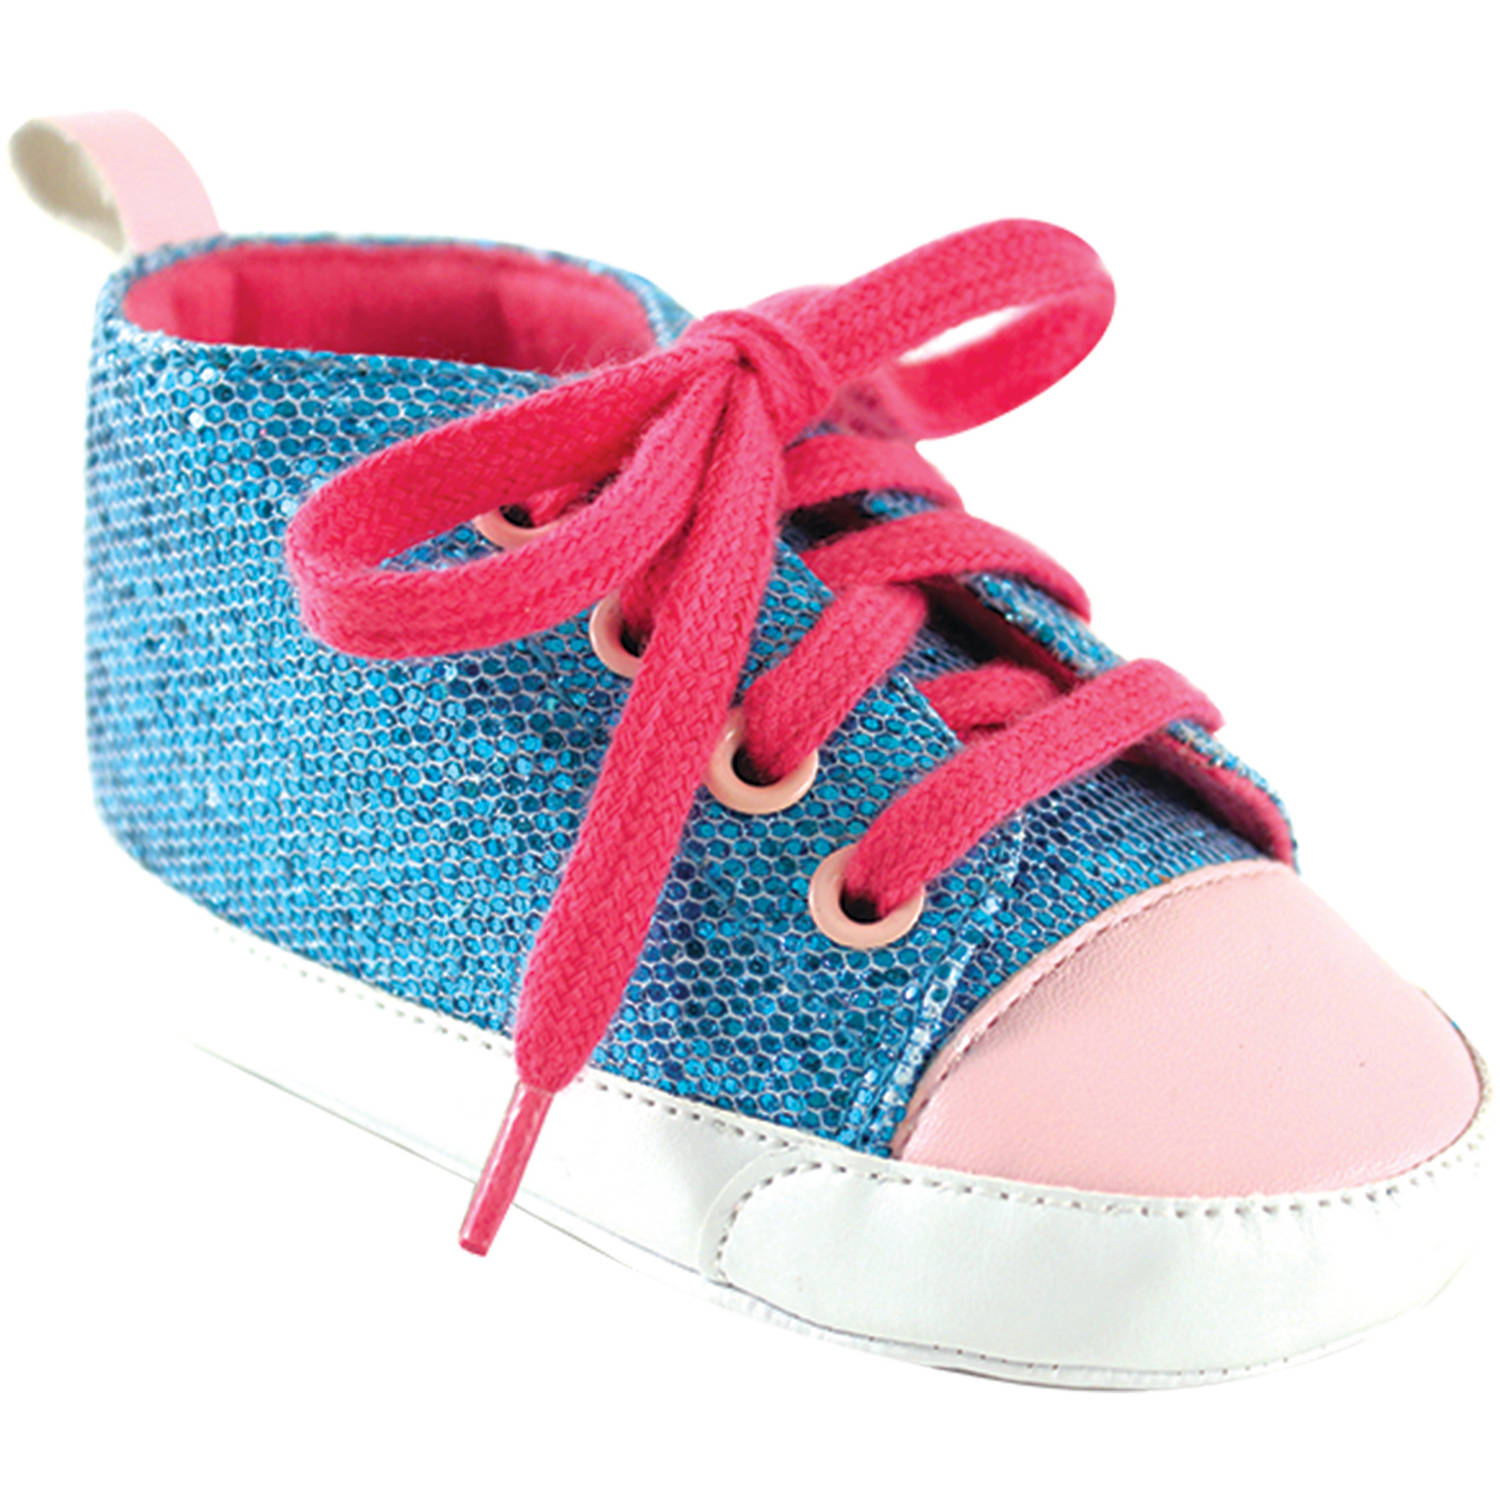 Luvable Friends Newborn Baby Girl Sparkly Sneakers